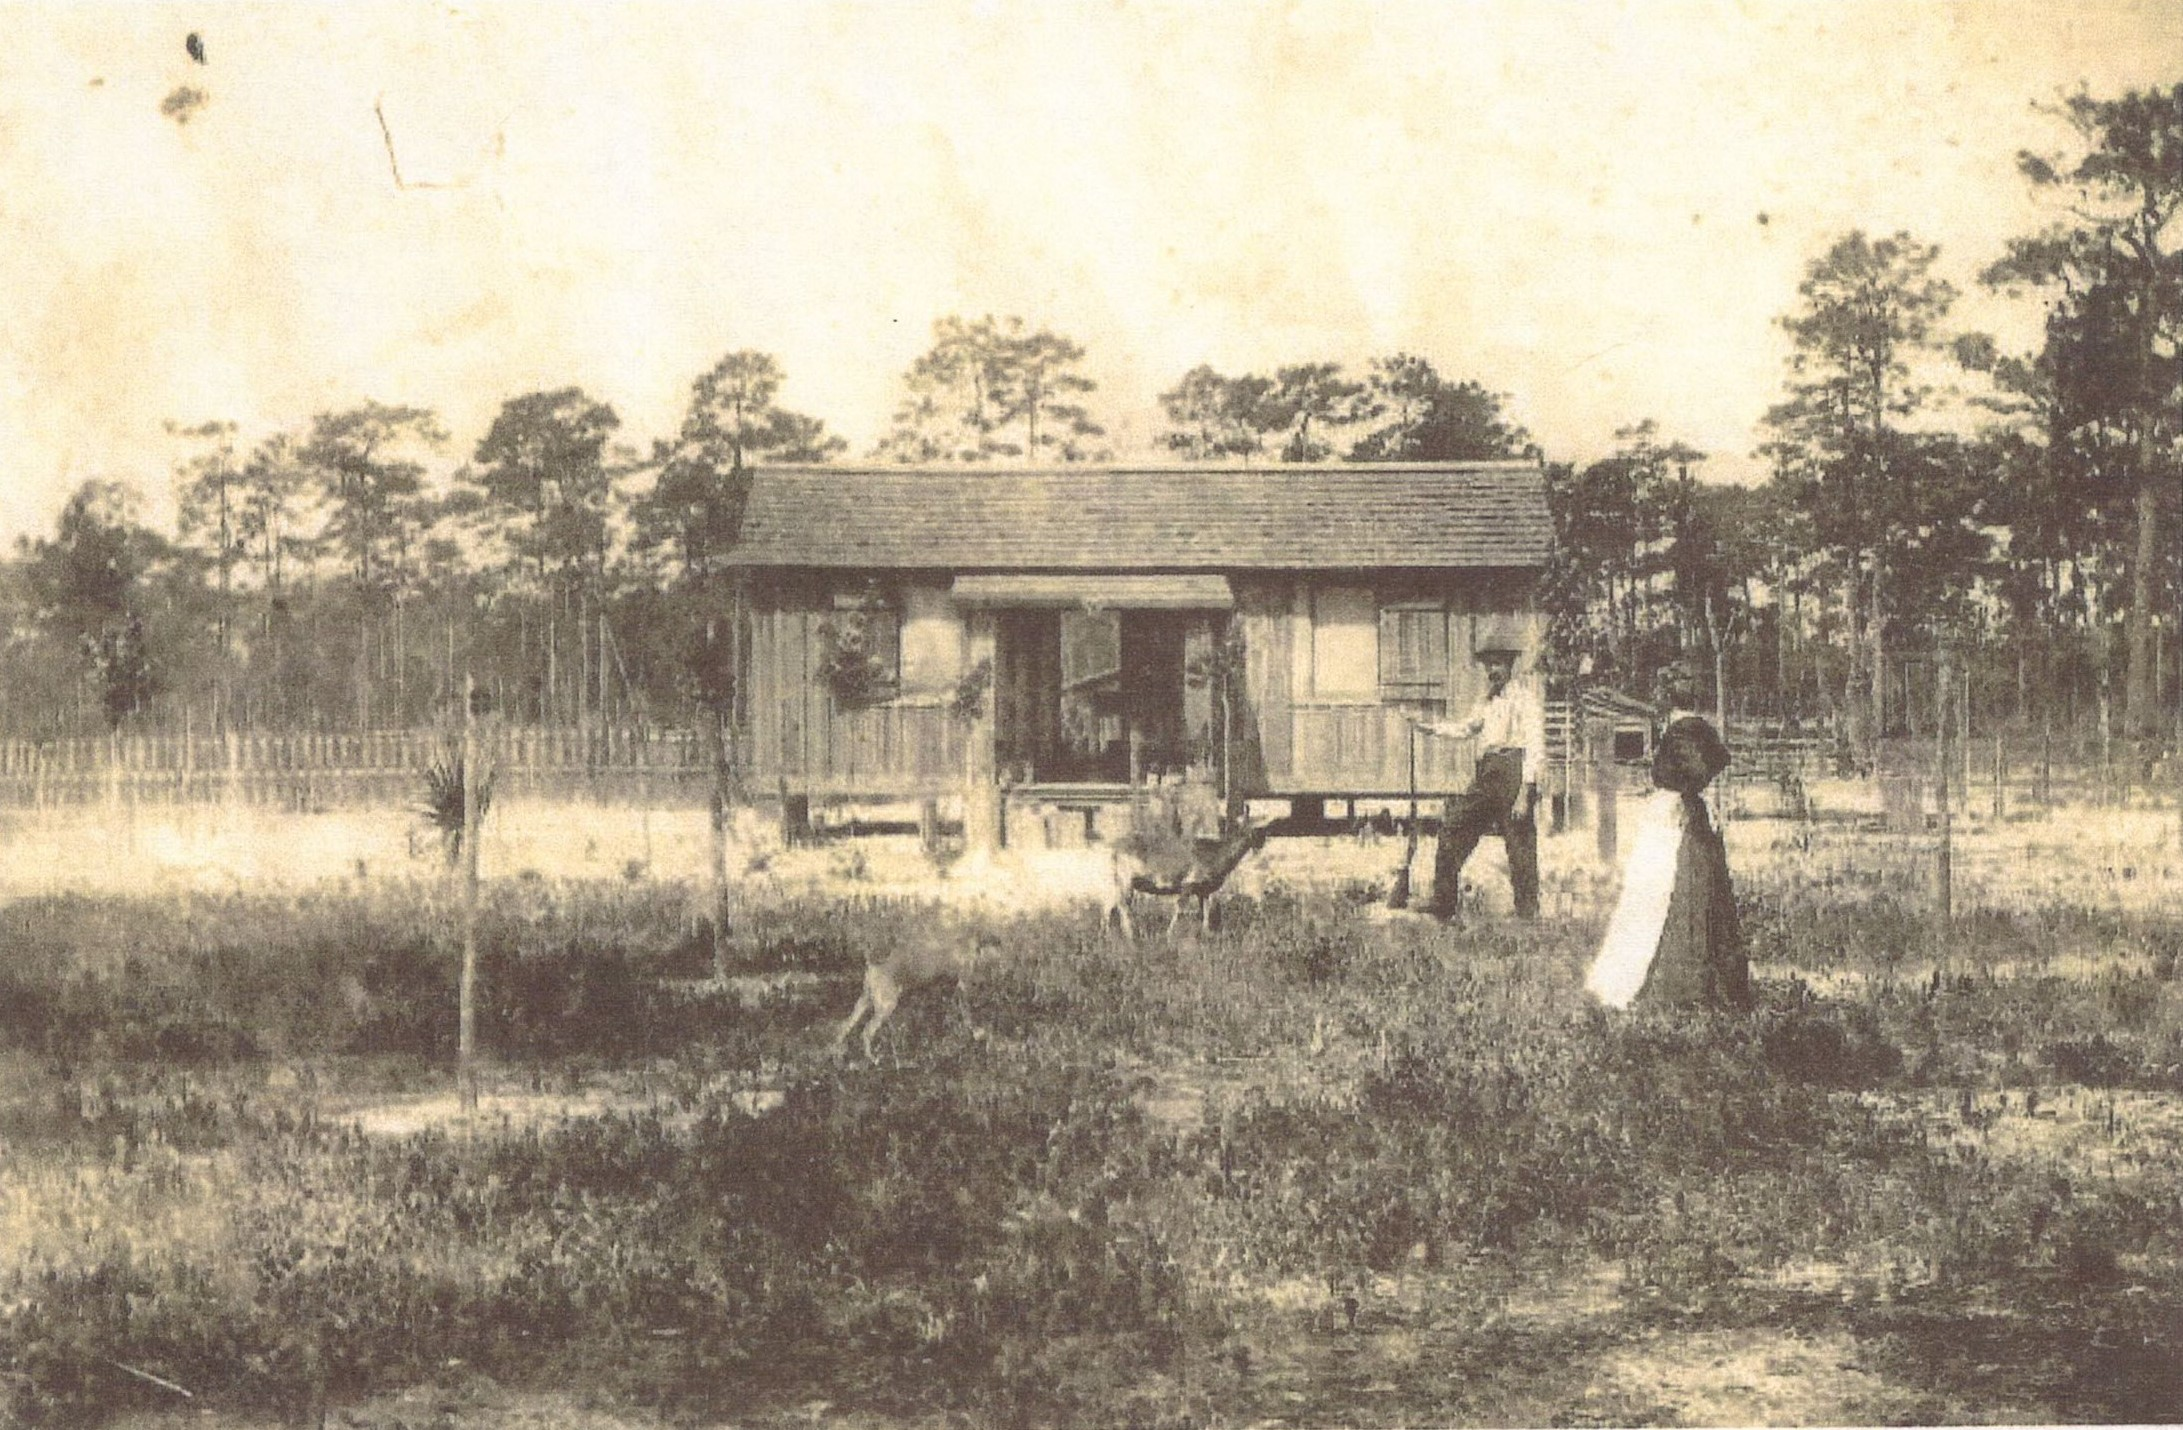 Ethel Resident Finley B. Click and wife Maggie in front of their 2nd home at Ethel 1912